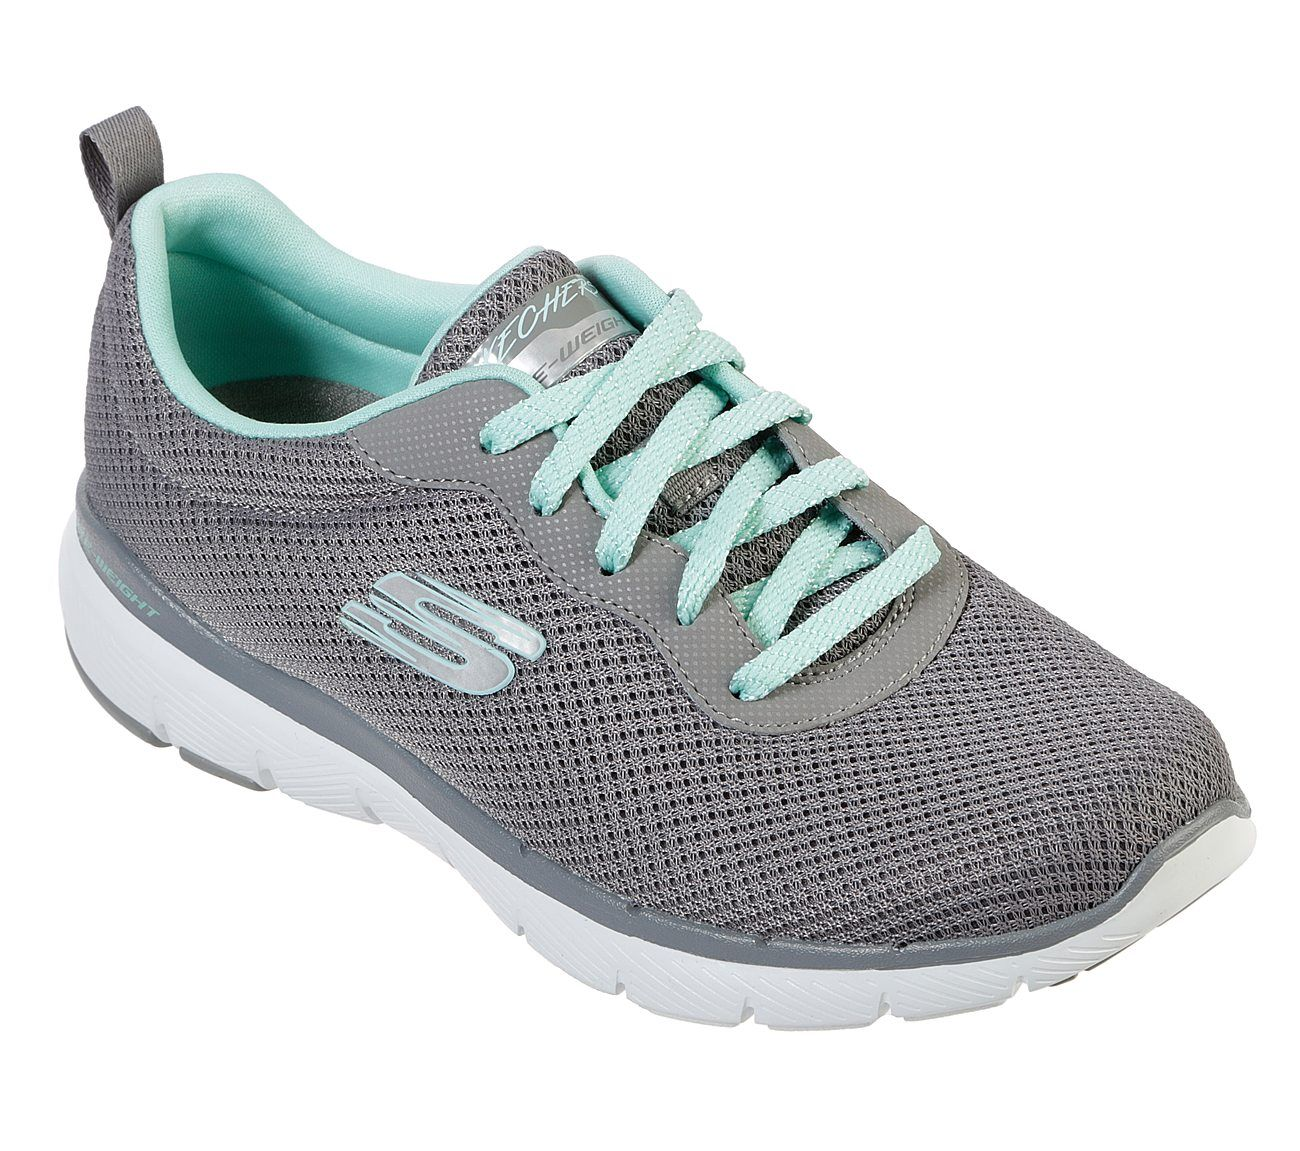 Flex Appeal 3 0 First Insight With Images Skechers Best